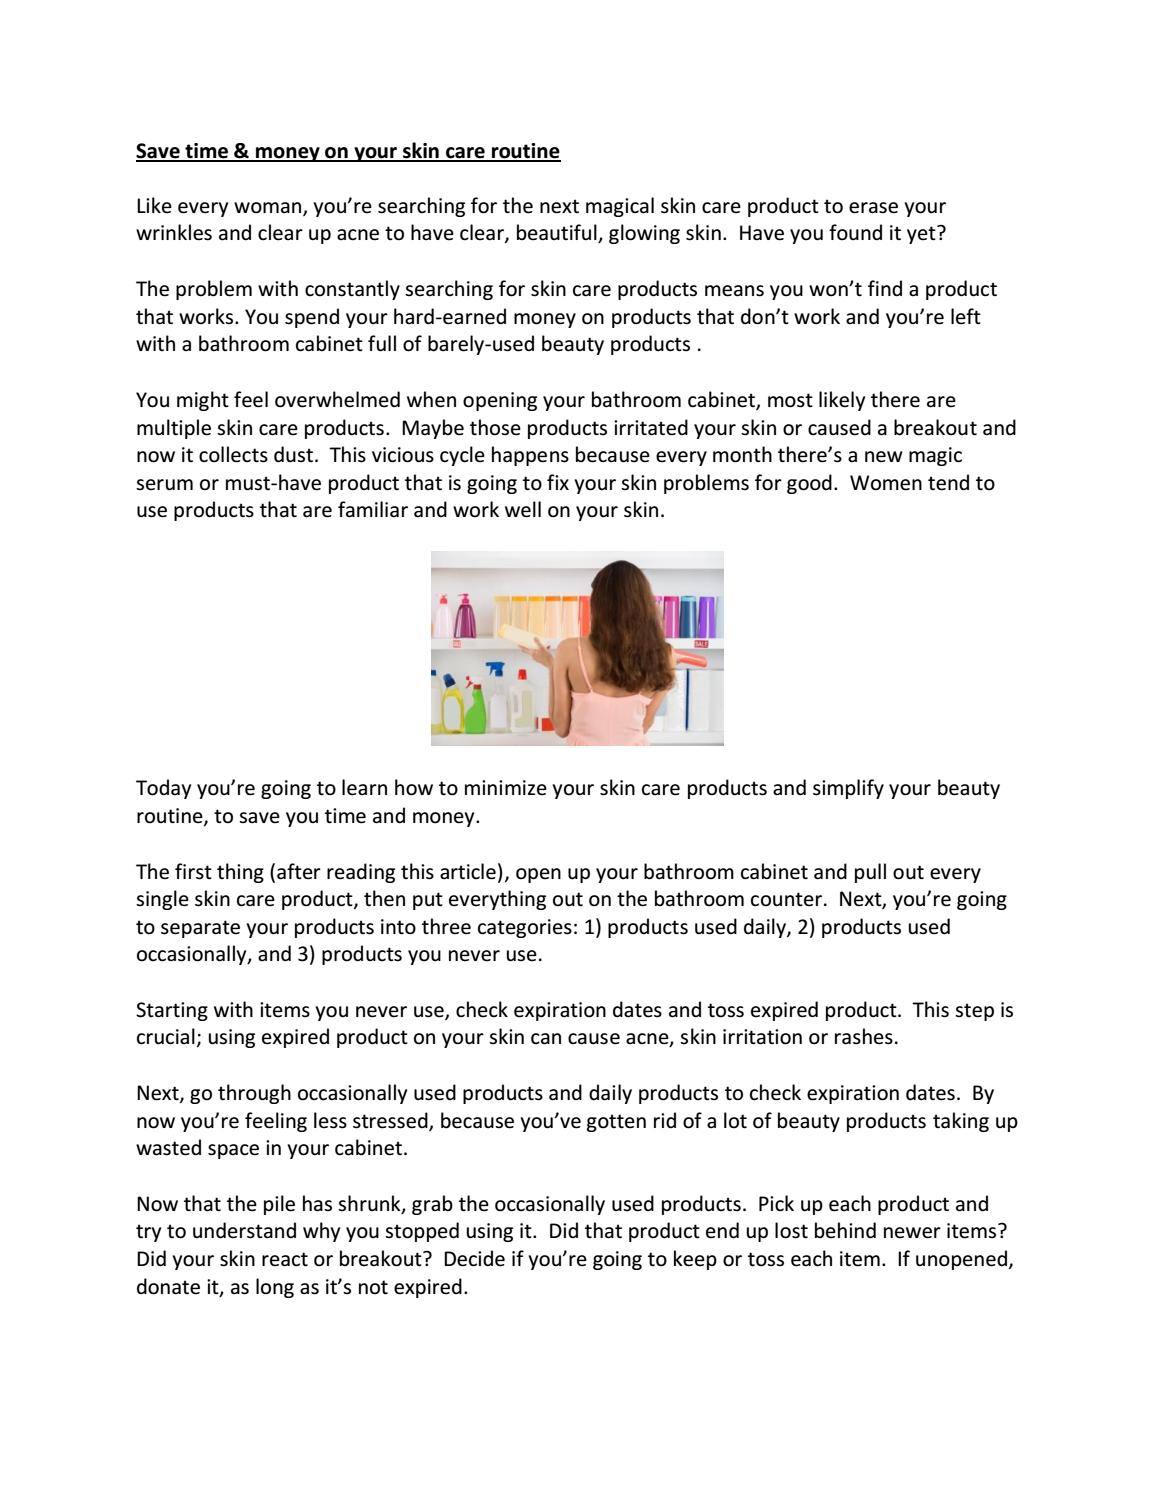 ca3950dfd9 Save Time and Money on Skin Care by samanthadench - issuu